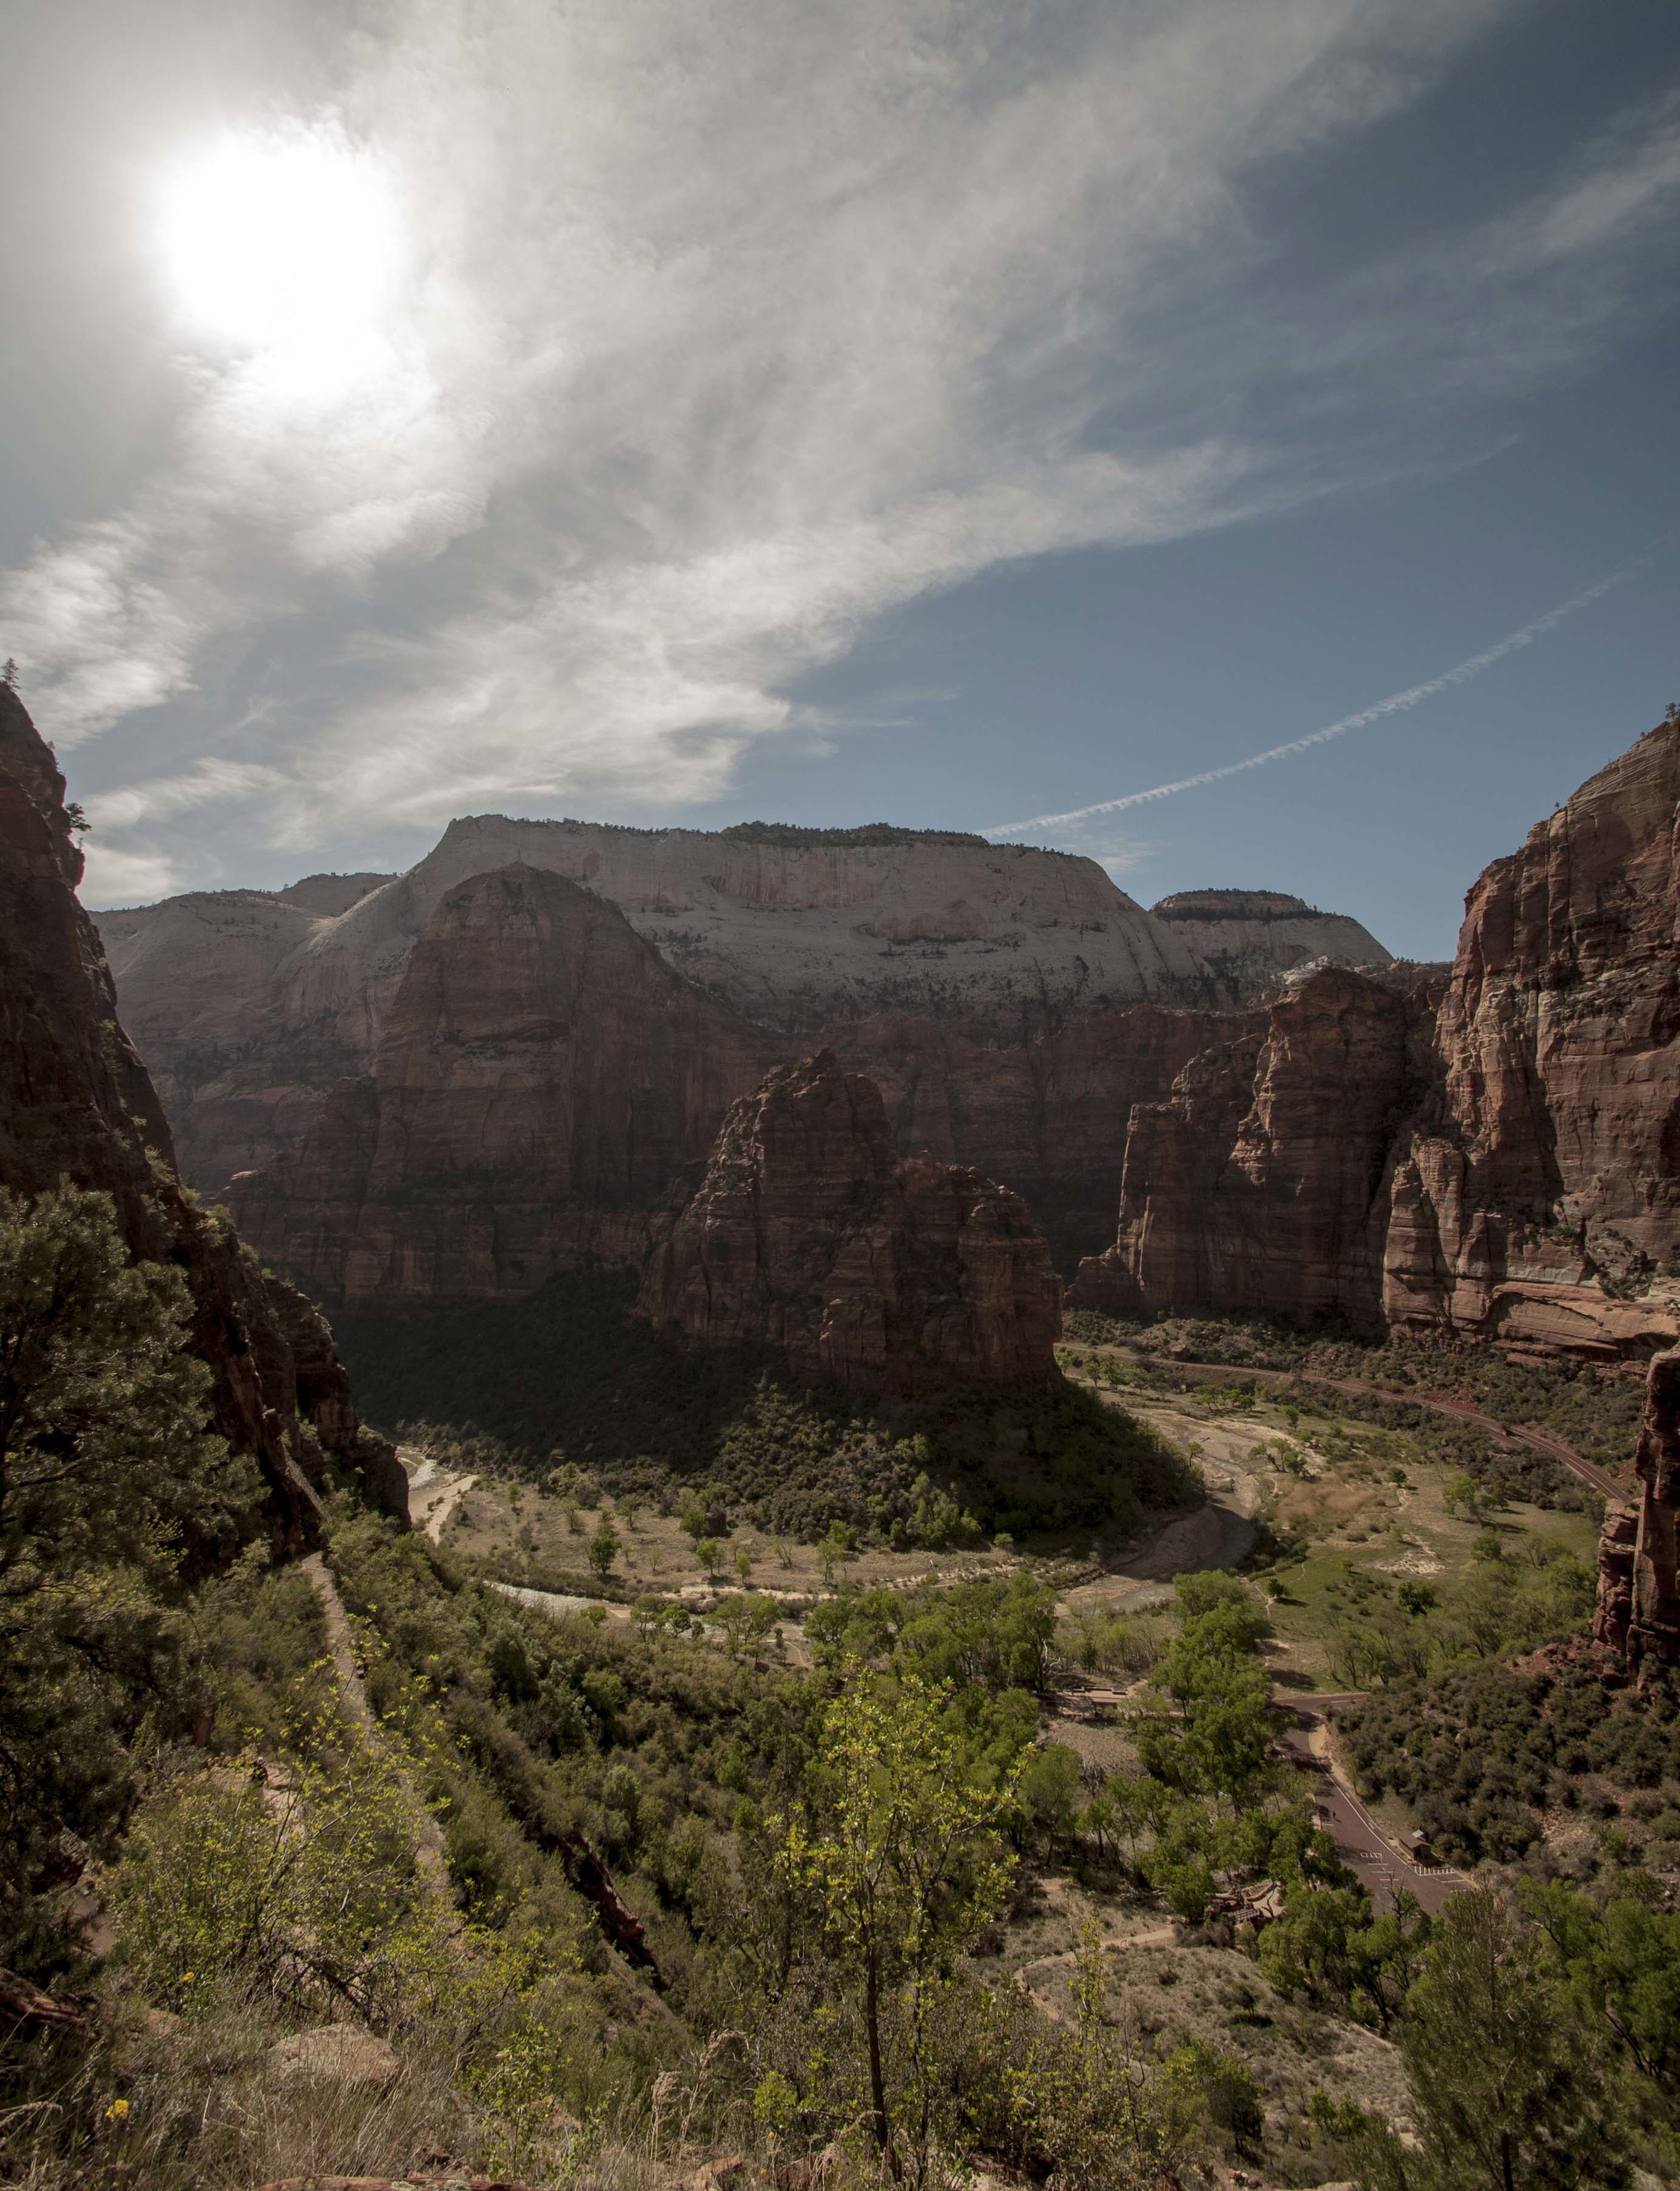 Bend of the Virgin River. Photograph by Stefan Moser, post-processed by Christine Moser.